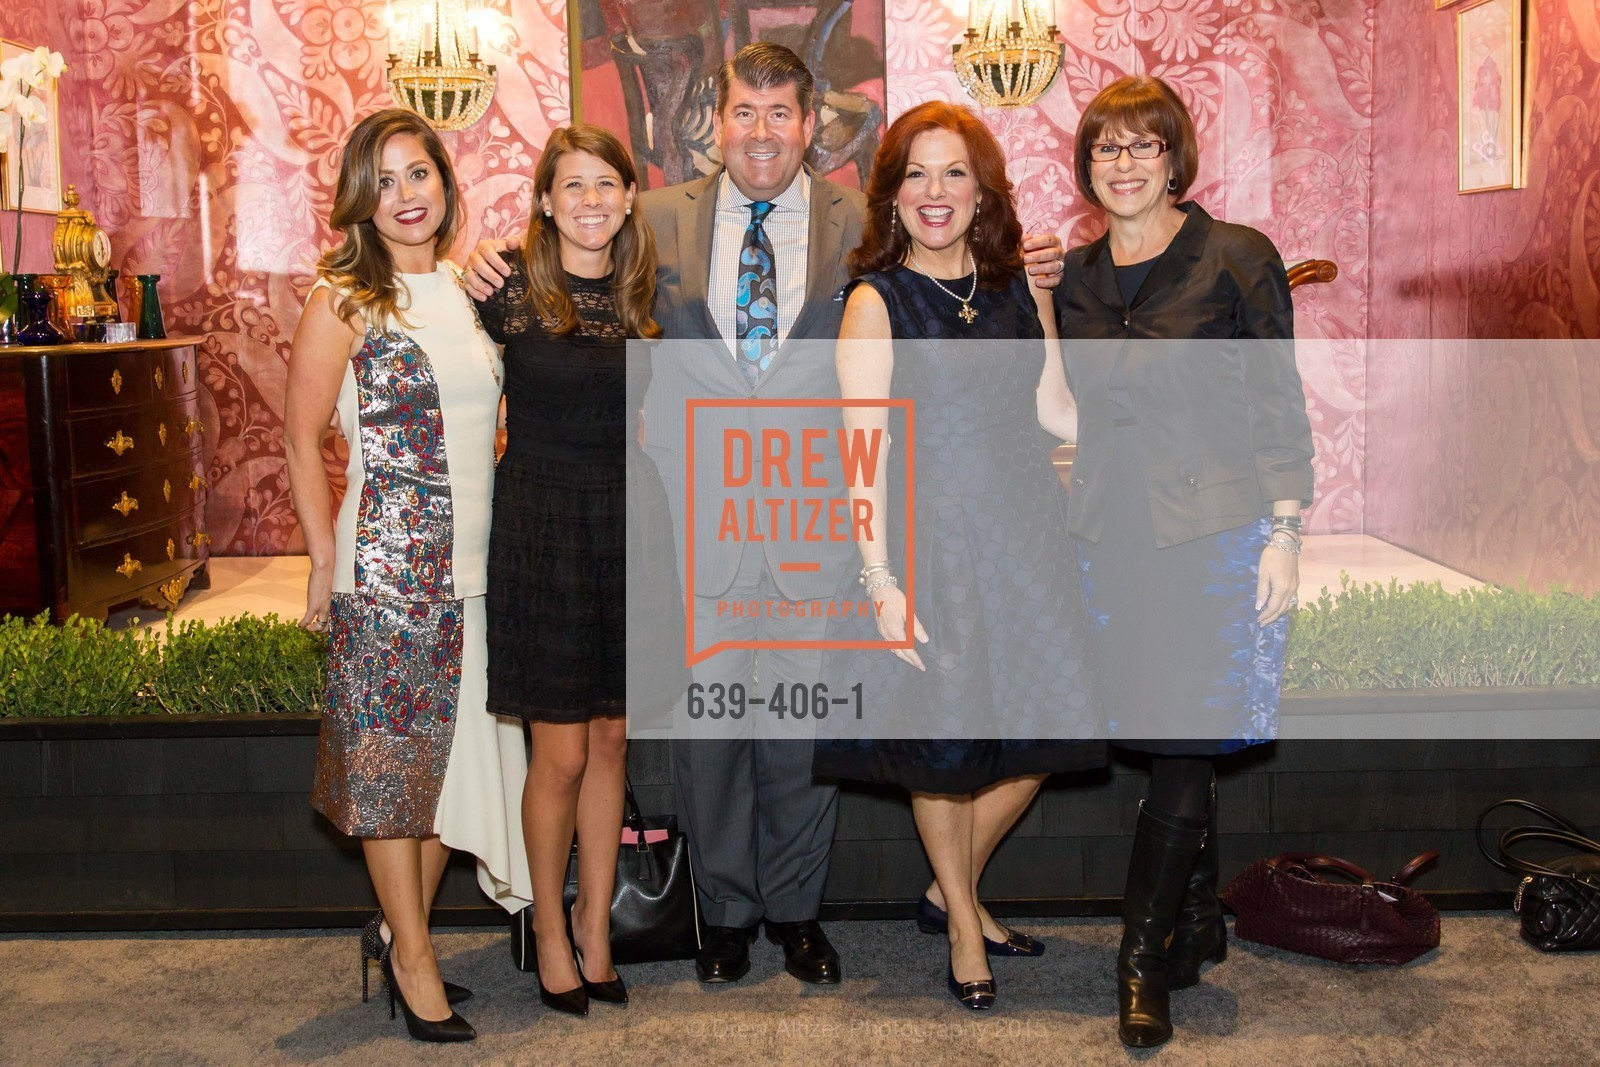 Shannon Blunden, Maggie Koenig, Alan Morrell, Theresa Spirz, Terri Mino, The San Francisco Fall Antiques Show, Festival Pavilion, Fort Mason, October 21st, 2015,Drew Altizer, Drew Altizer Photography, full-service agency, private events, San Francisco photographer, photographer california